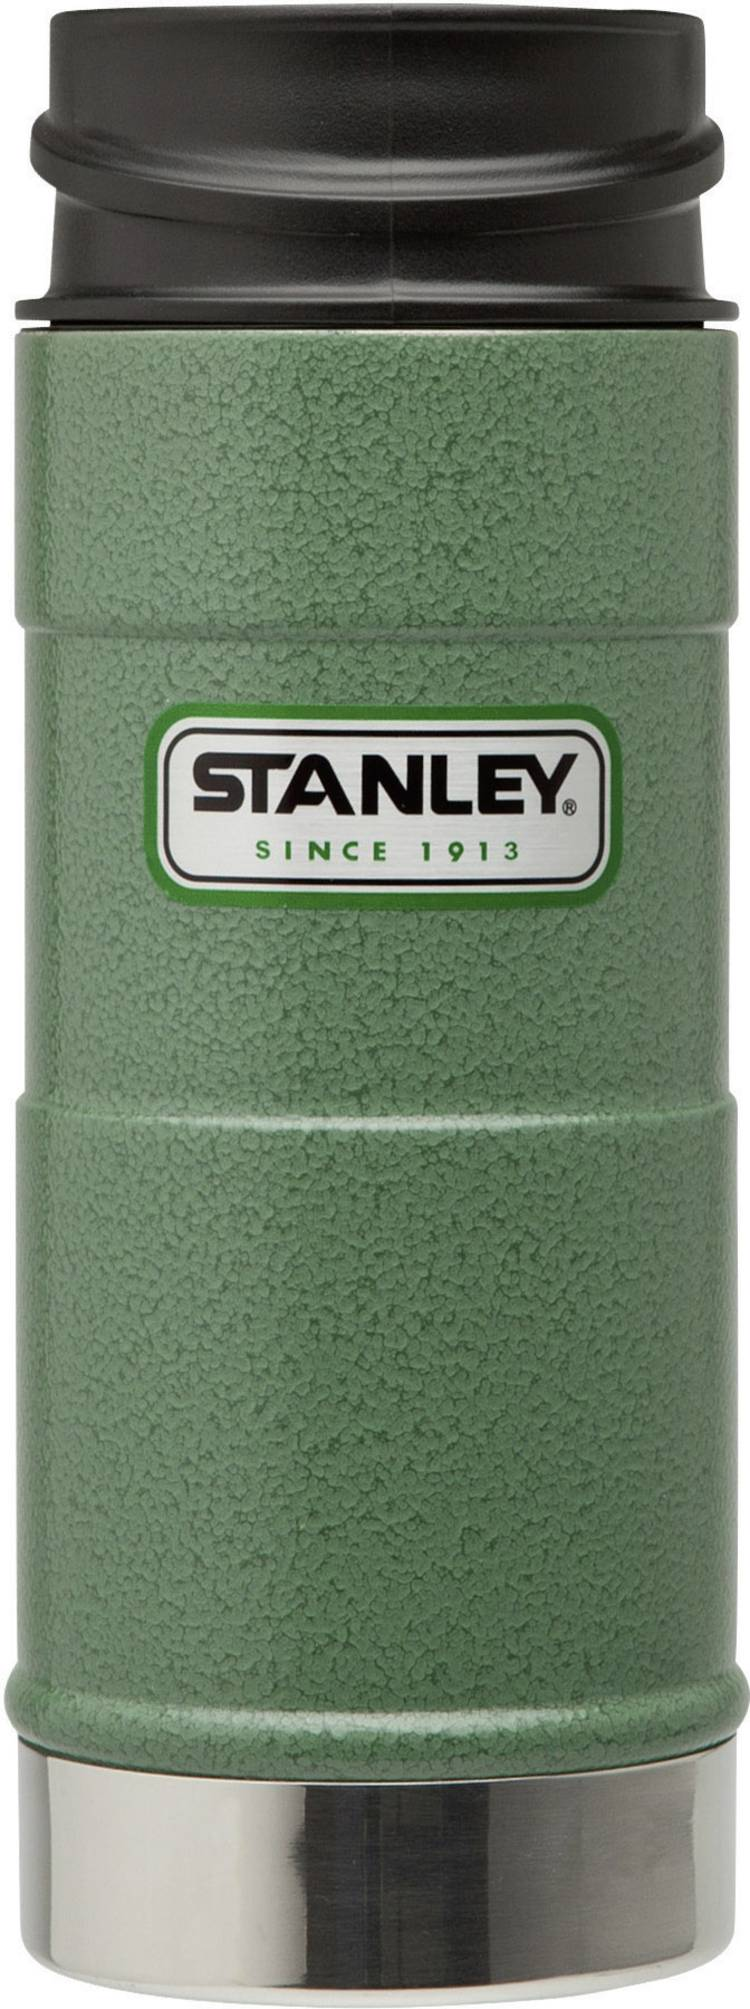 Stanley Classic 10-01569-001 Thermosbeker Groen 350 ml